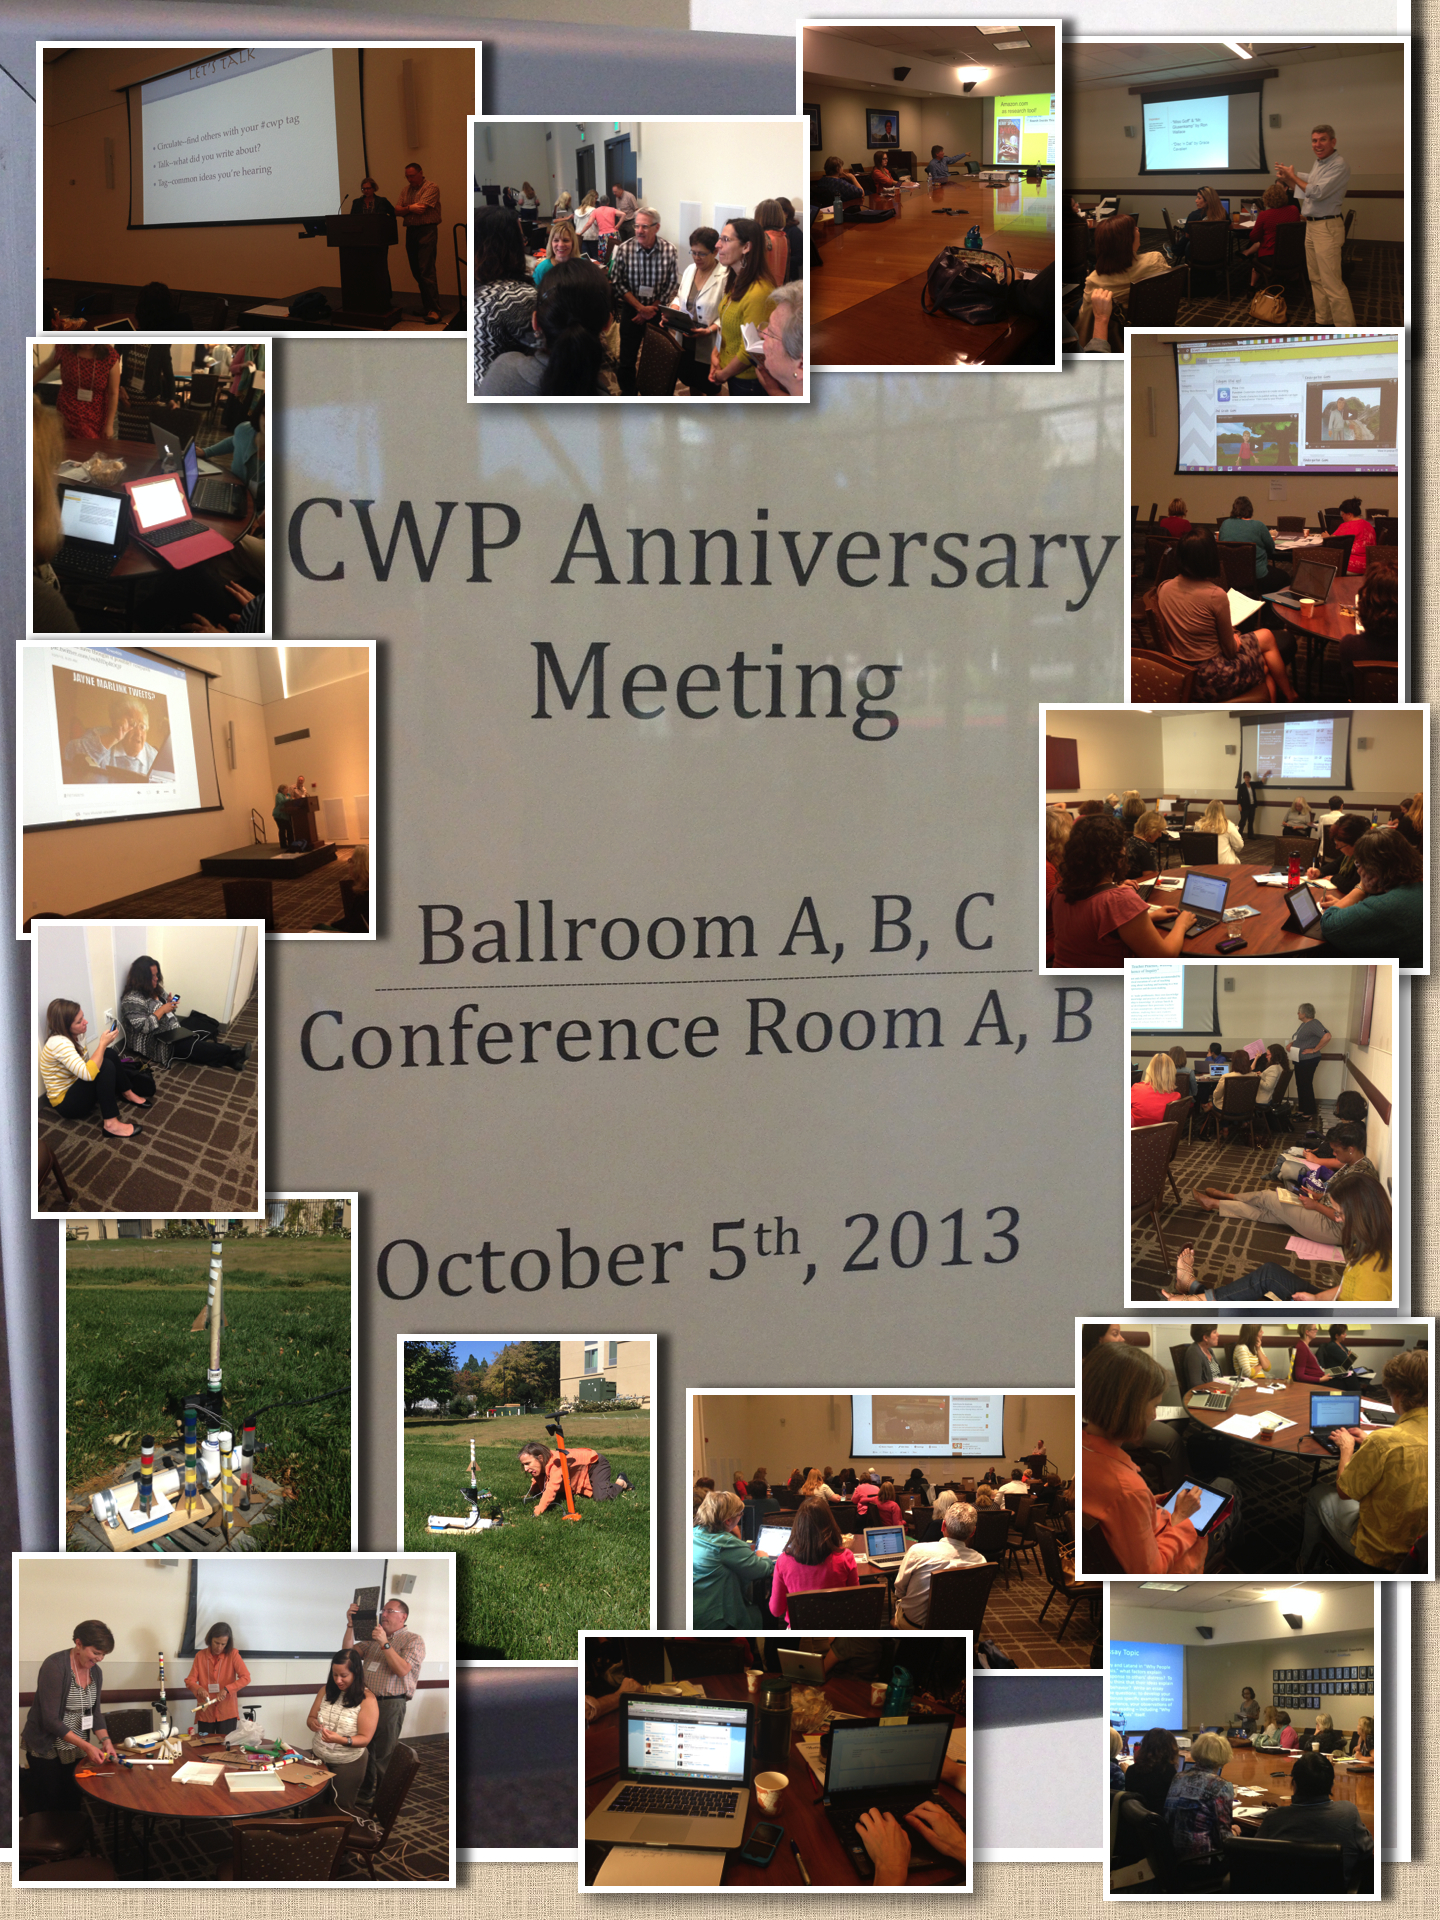 CWP Anniversary Meeting